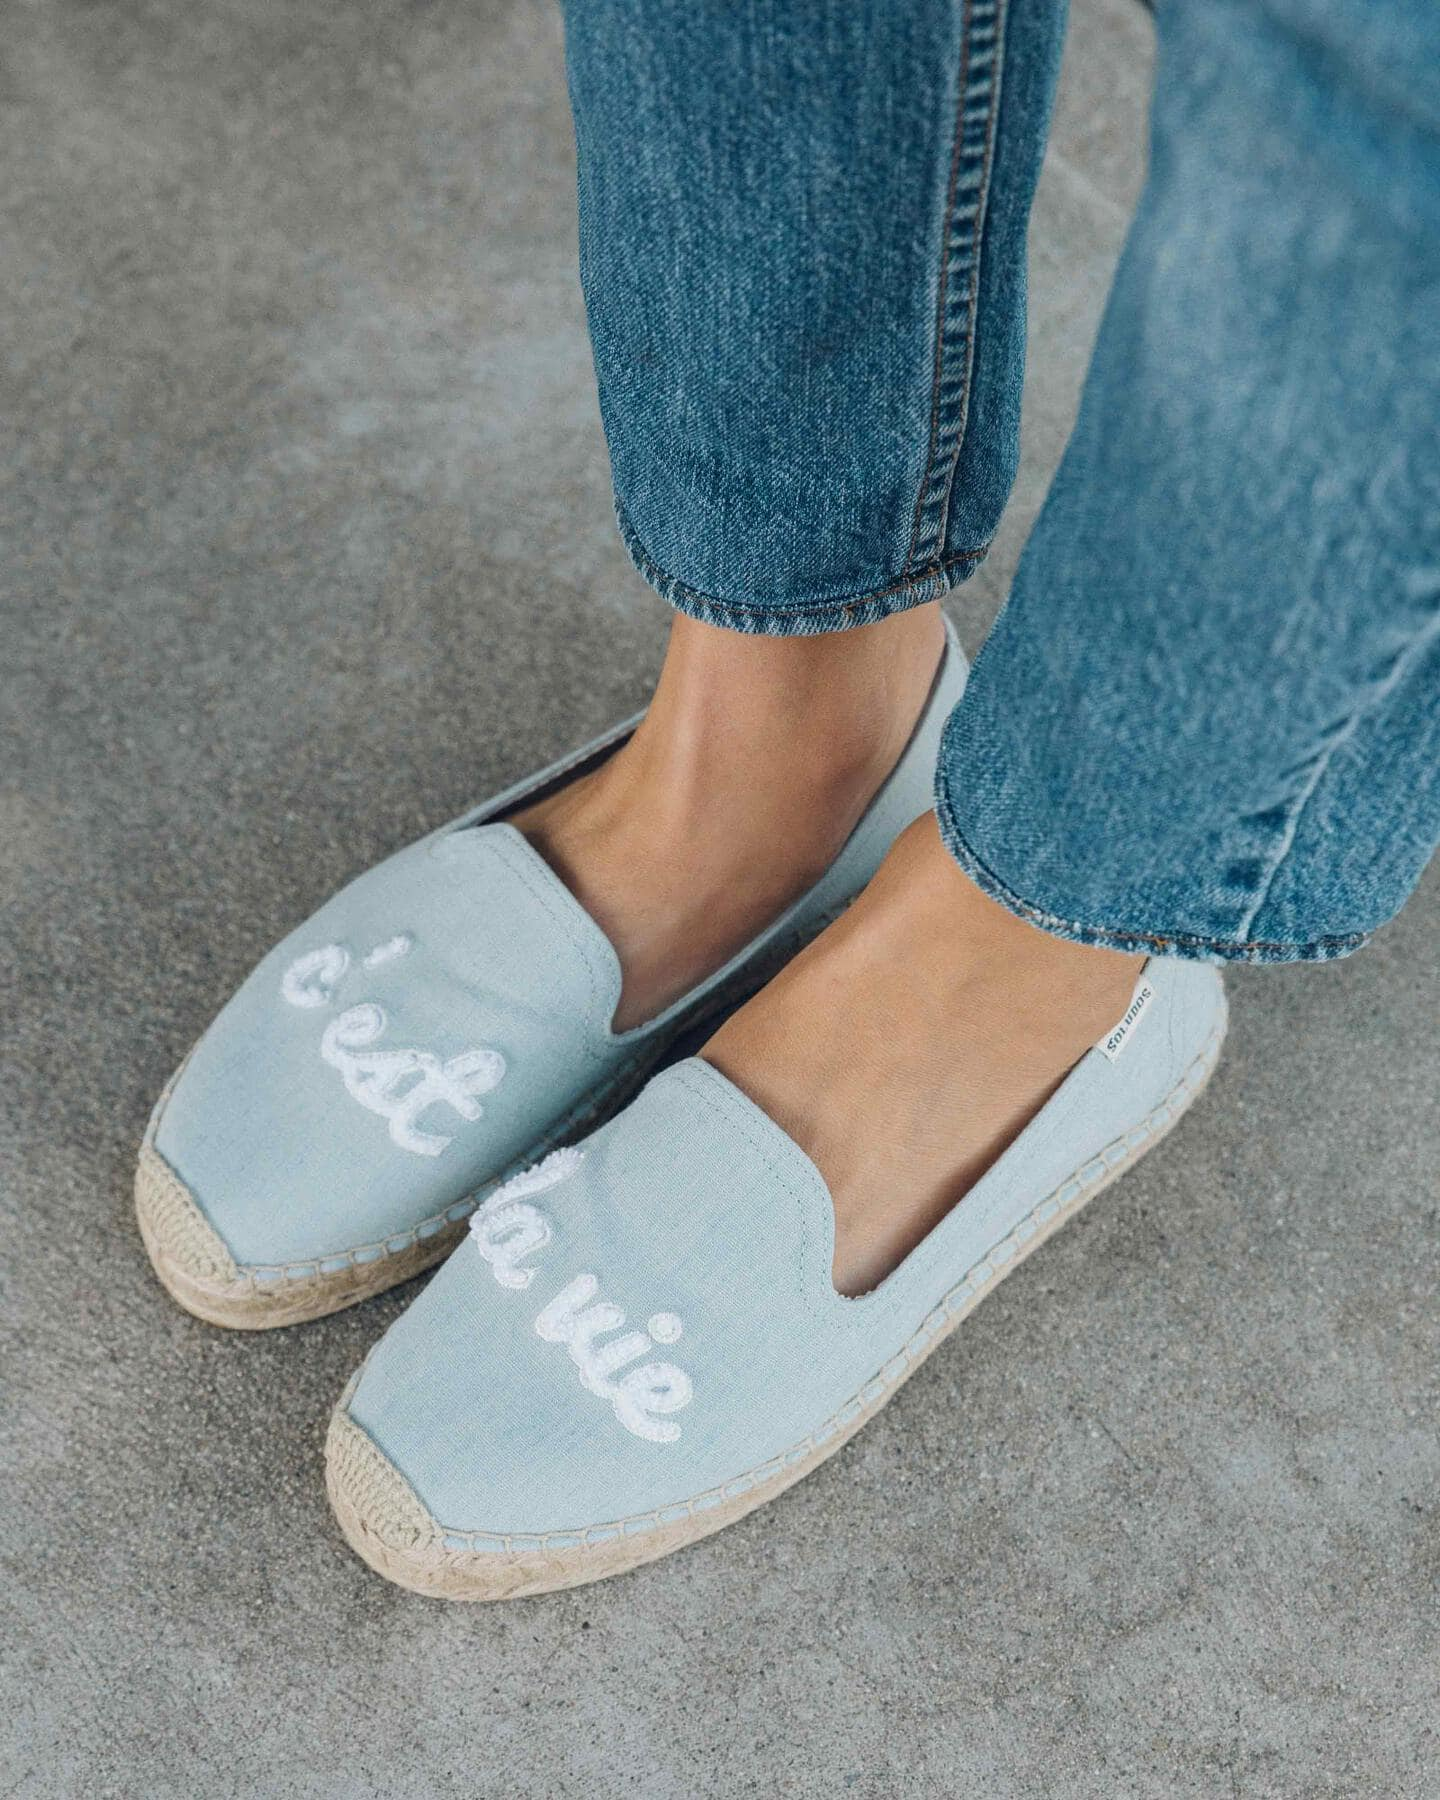 OuiPlease OuiBlog Summer Wardrobe Essentails Soludos Espadrilles